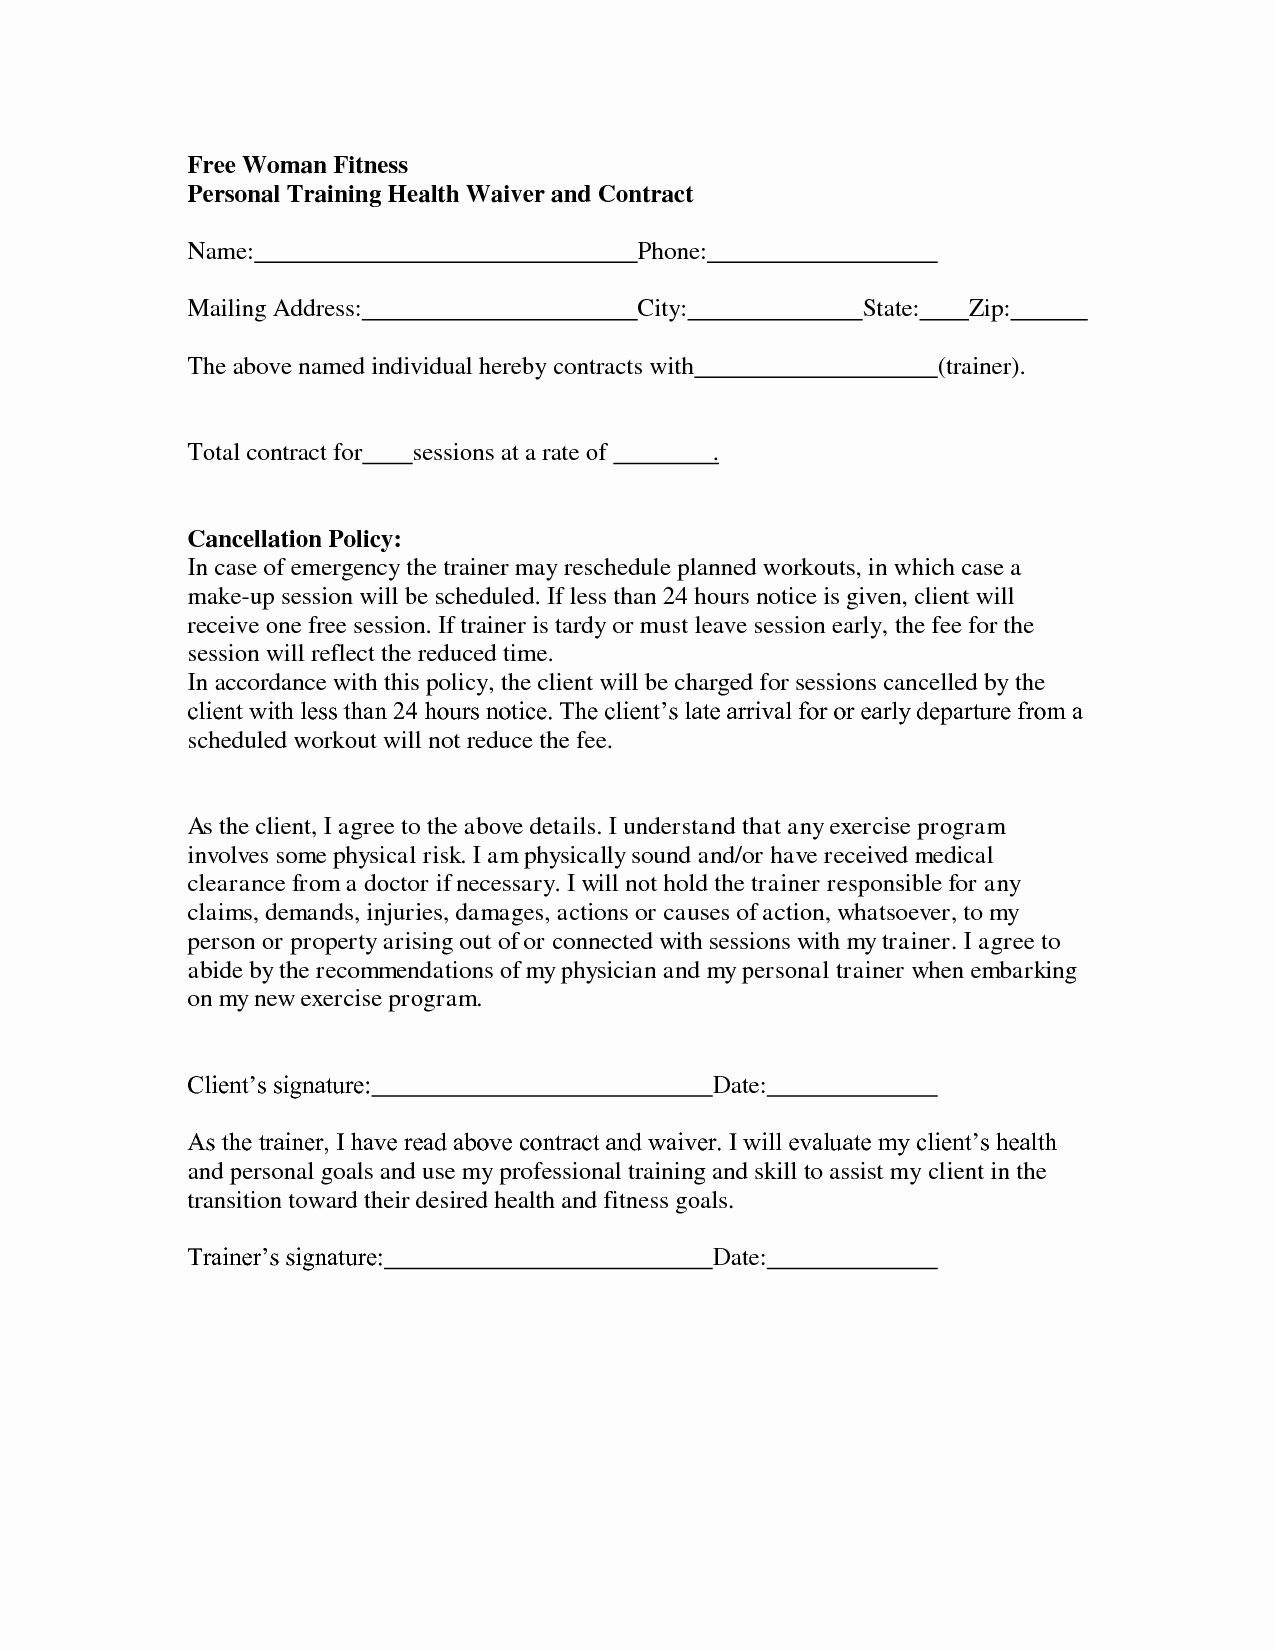 Personal Training Agreement Template Best Of Personal Training Contract Template Free Printable Documents